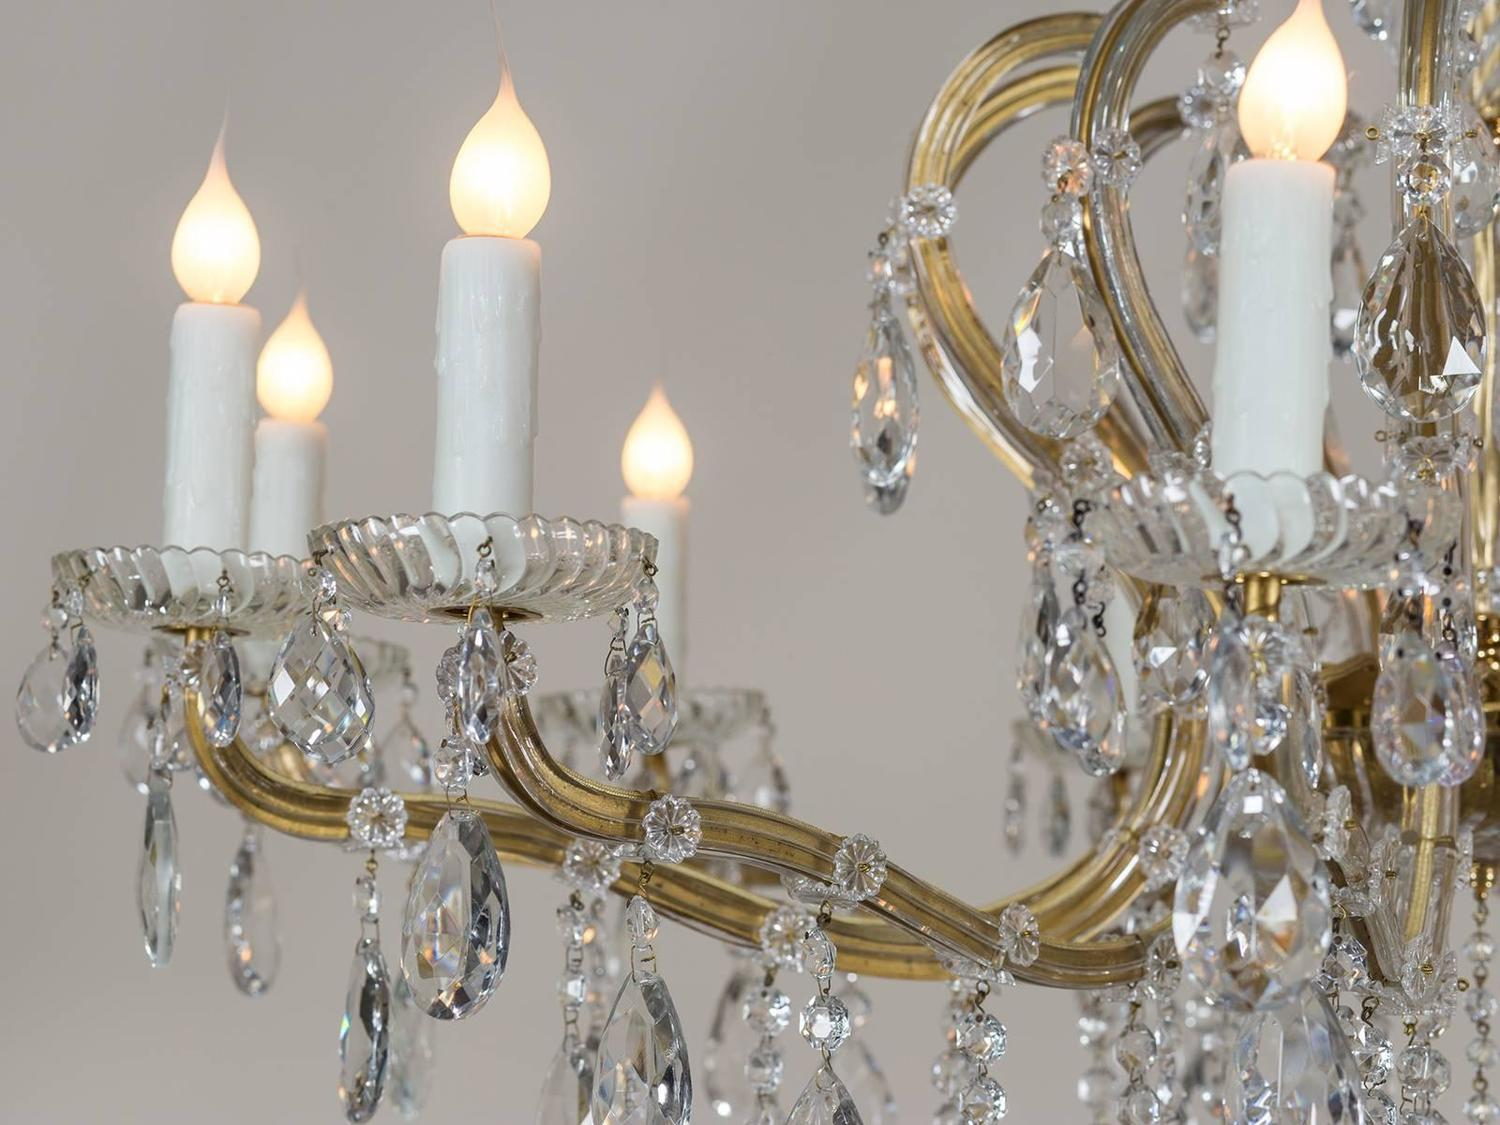 Antique austrian crystal chandelier chandelier designs vintage austrian crystal chandelier designs aloadofball Image collections